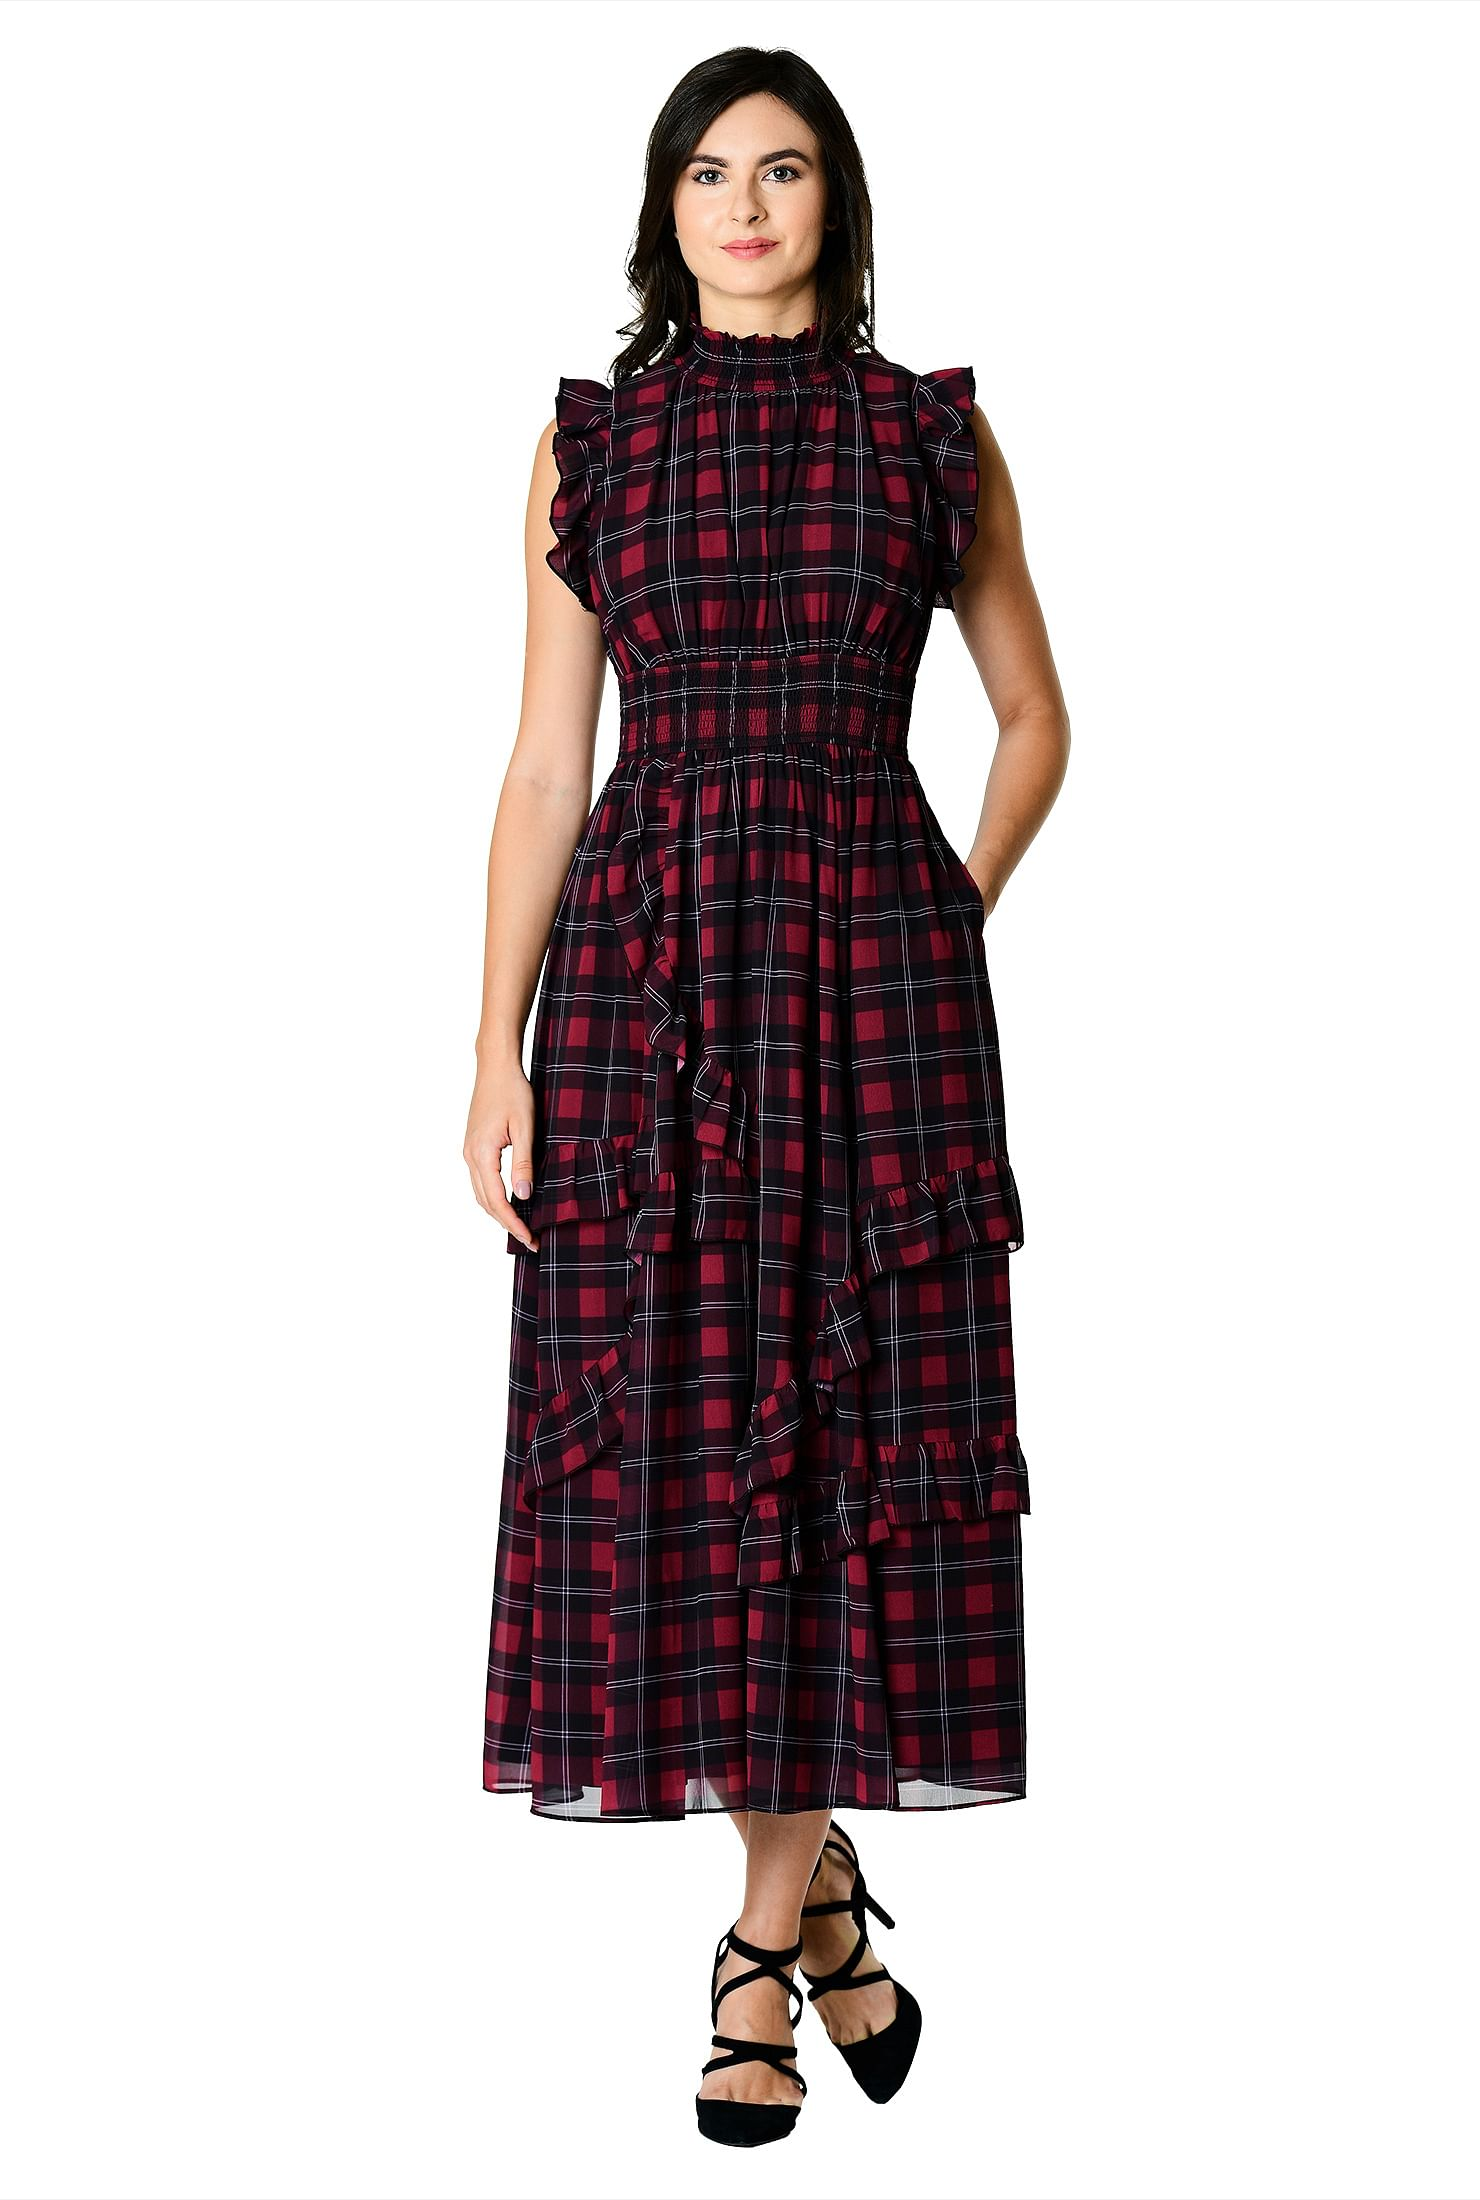 987203e2fee61 above ankle length dresses, Check Print Dresses, Fit and flare dresses,  Flutter